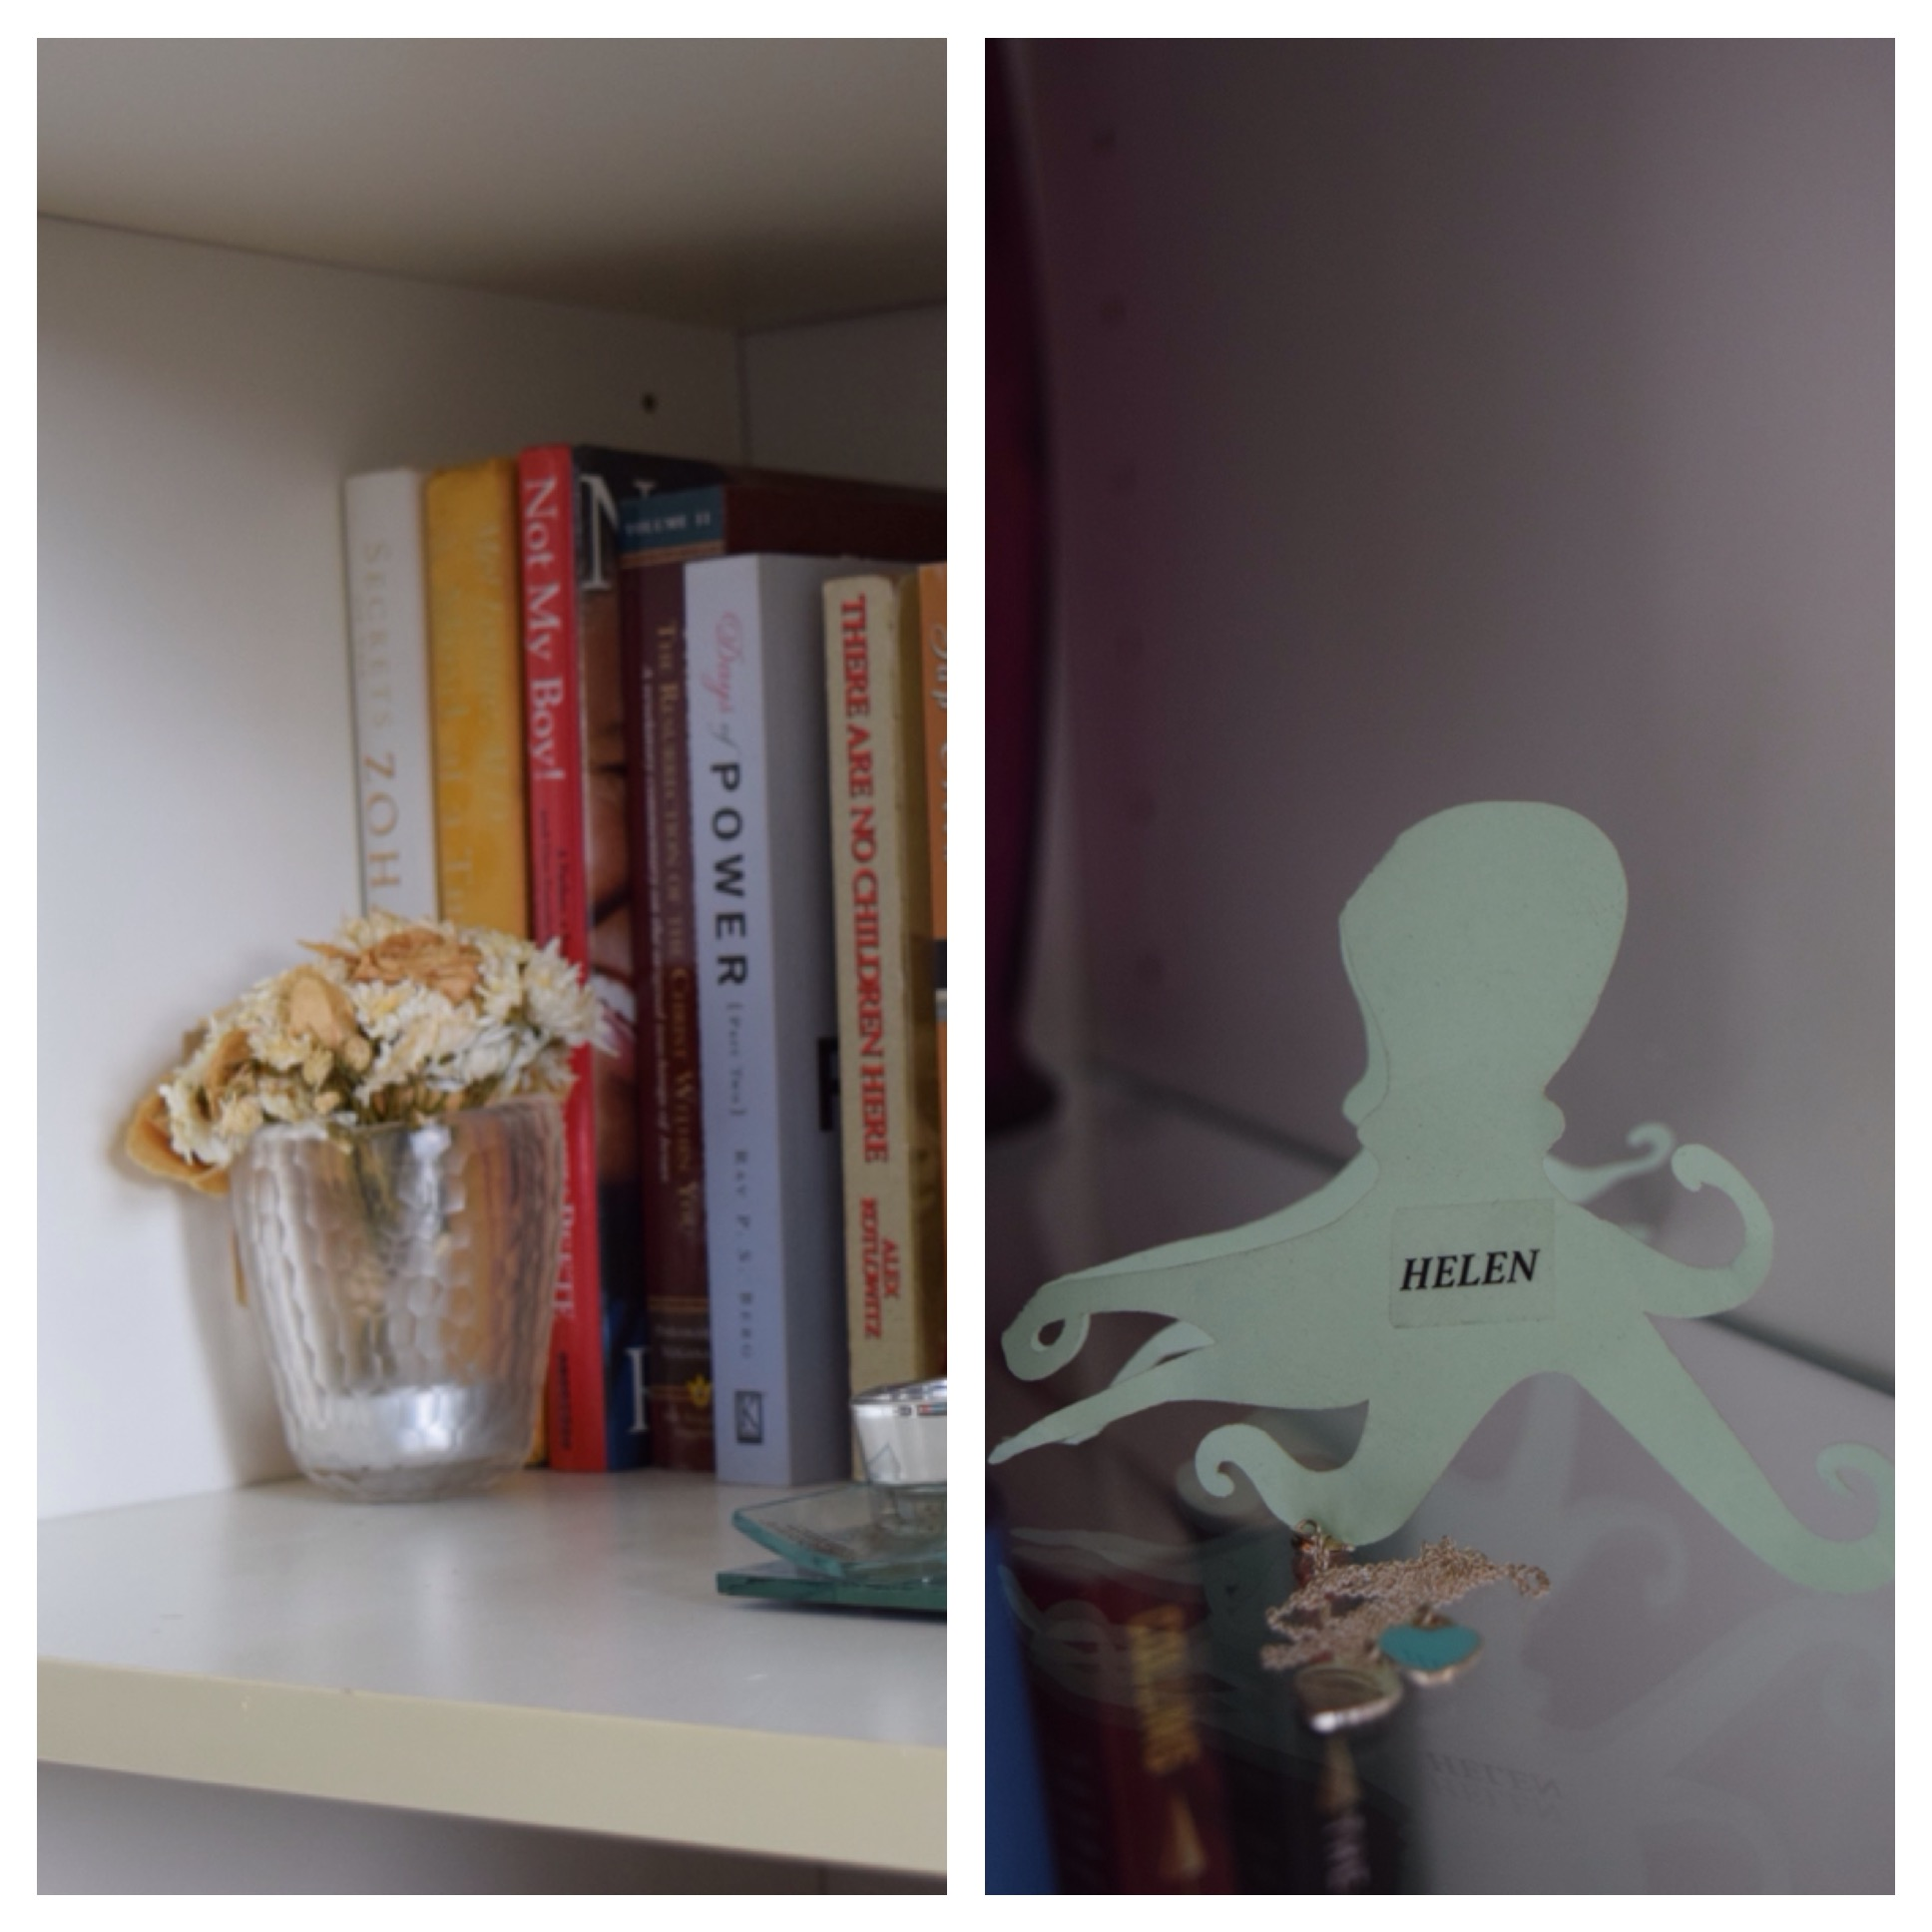 Left: Some of the flowers from my Maid of Honor bouquet. Right: My place card from the wedding and a gift from Alma.